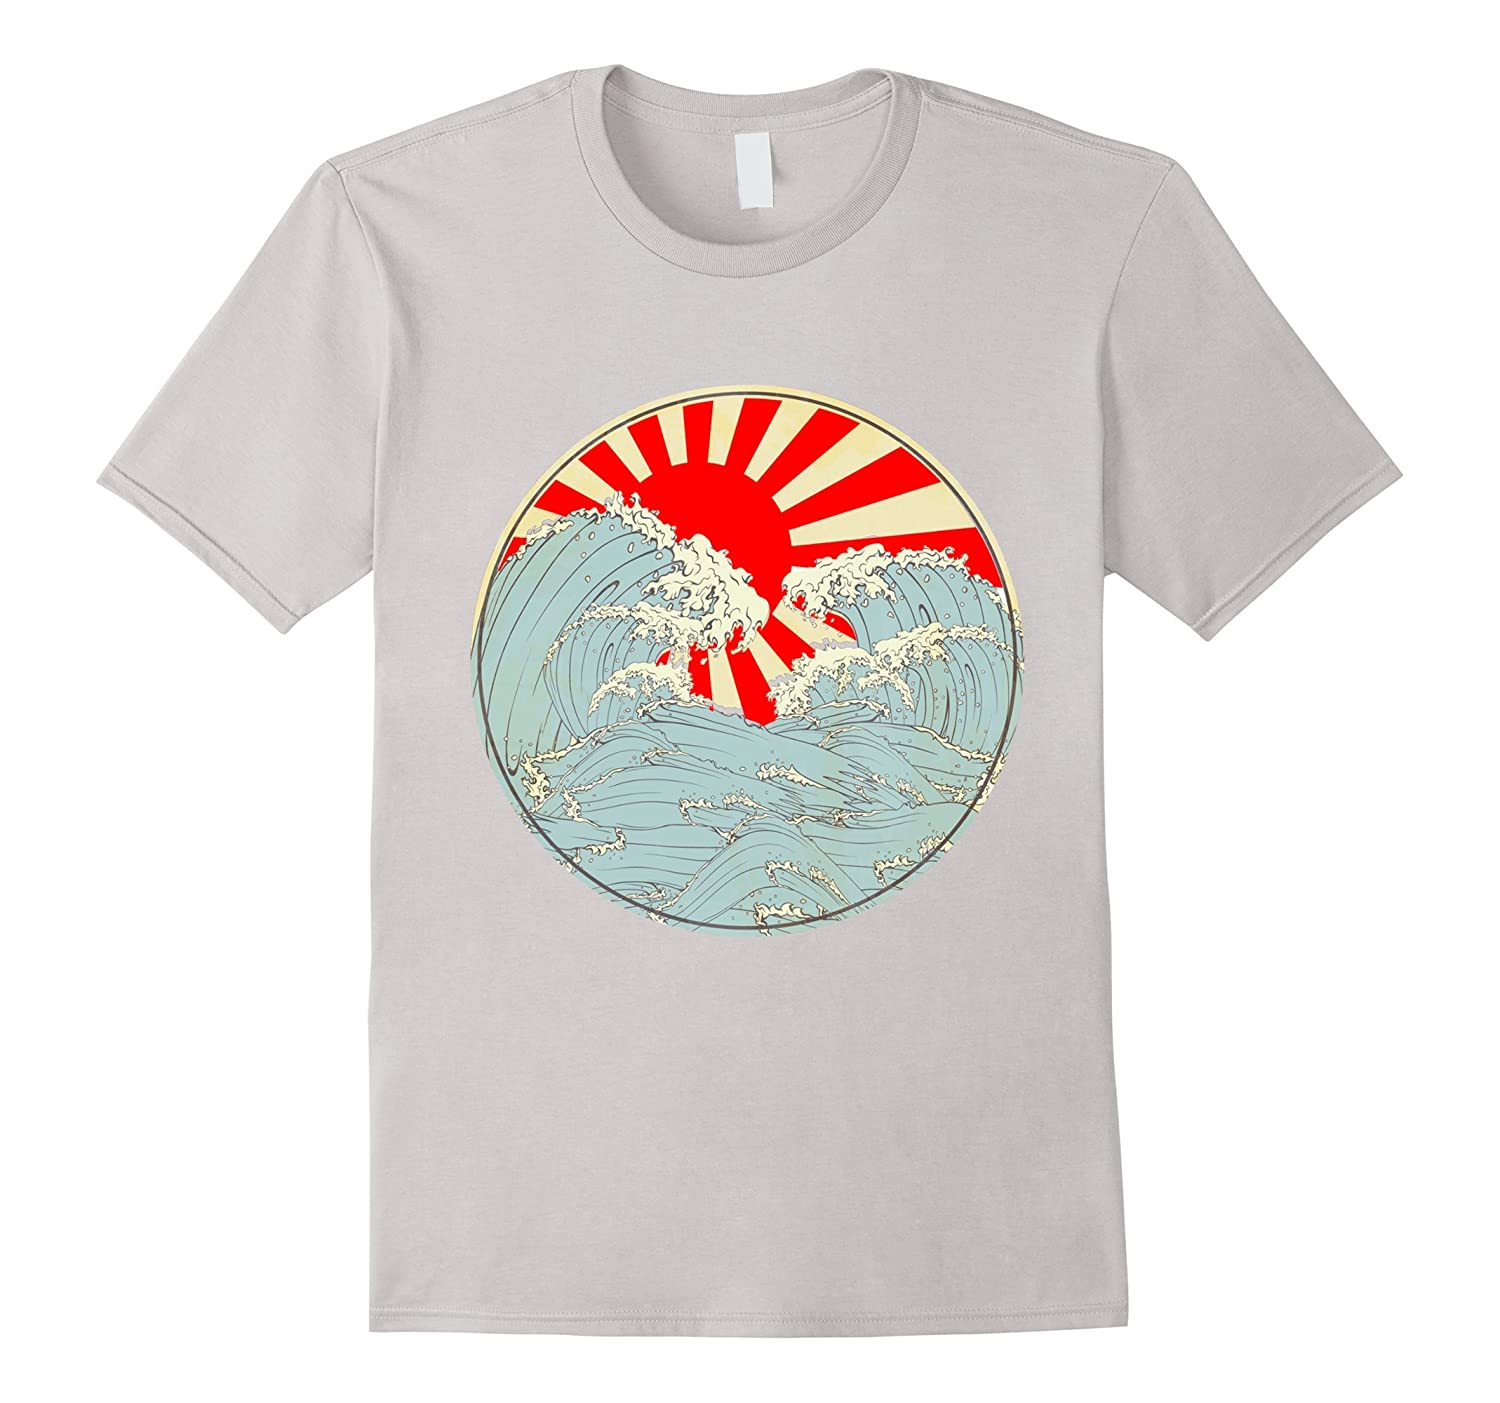 Japanese t shirt the great wave off kanagawa vintage art The great t shirt